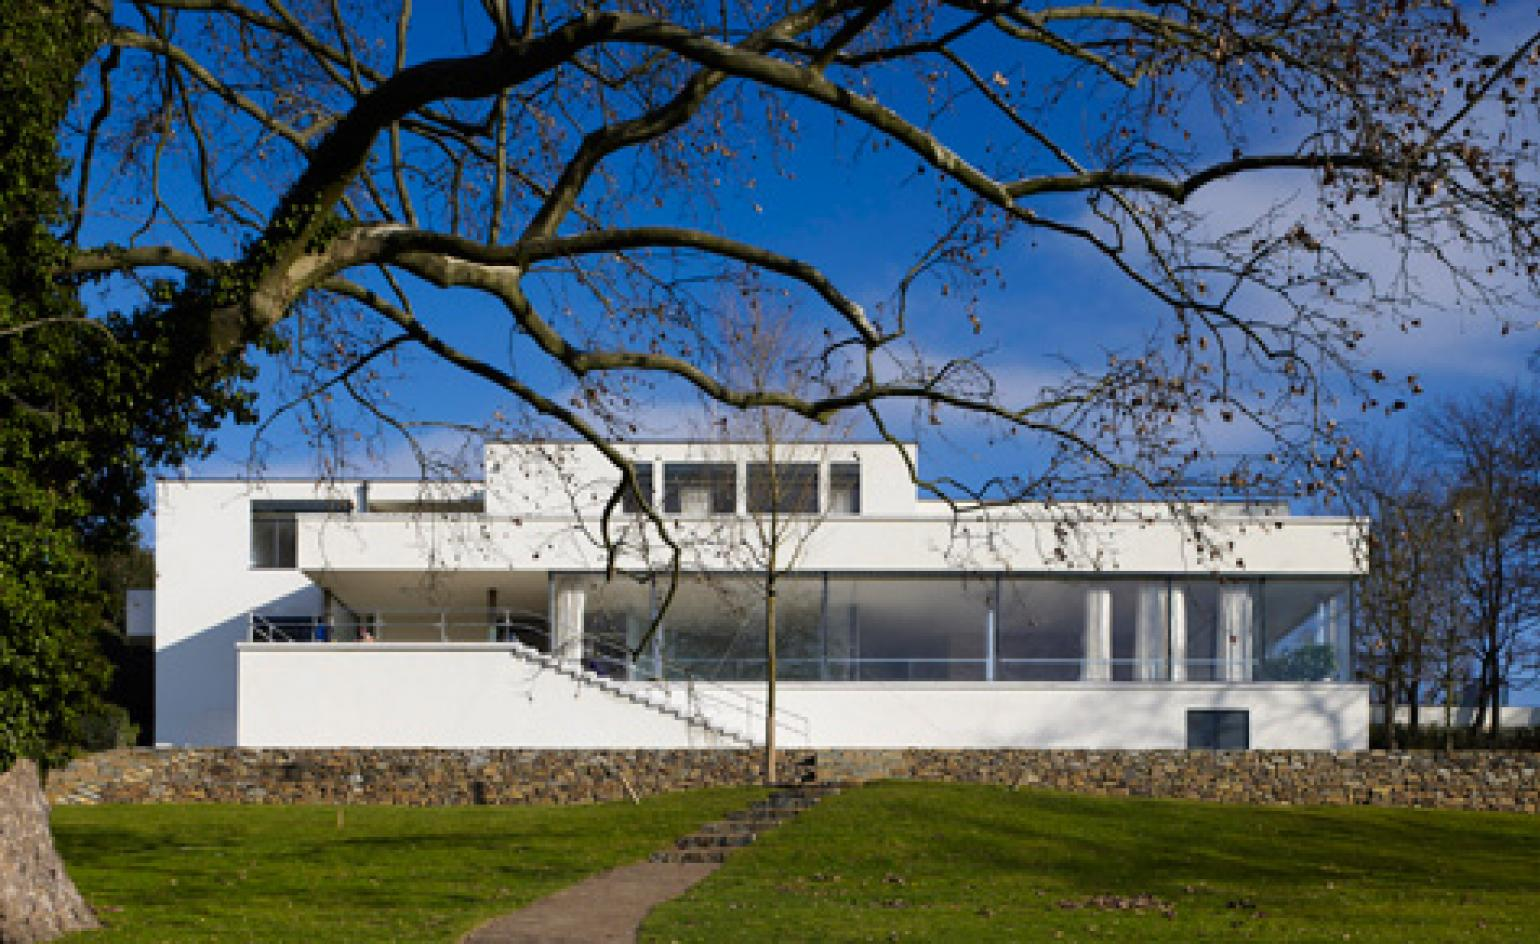 Ludwig Mies van der Rohes Villa Tugendhat returns to form  Wallpaper